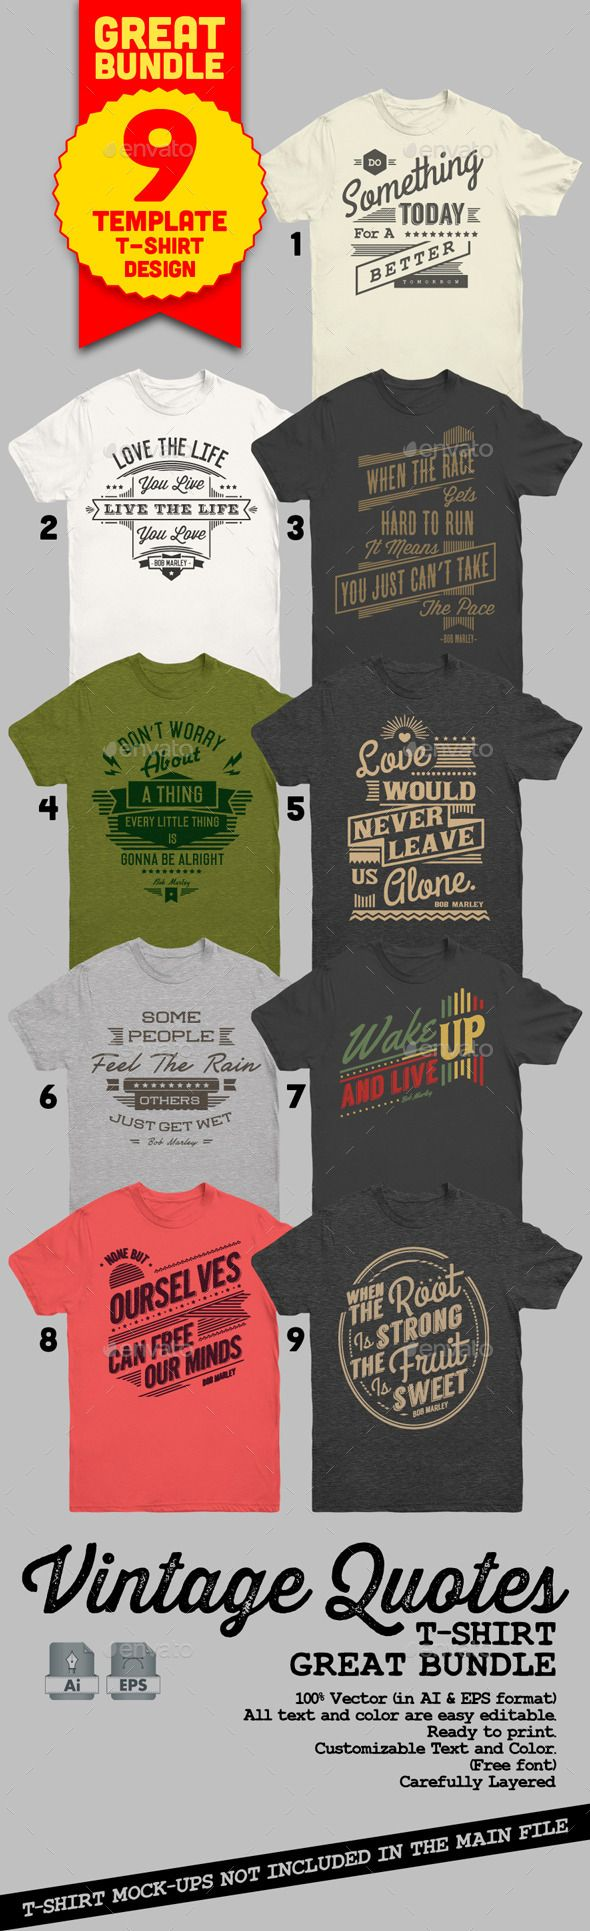 T shirt poster design - Vintage Quotes T Shirt Bundle